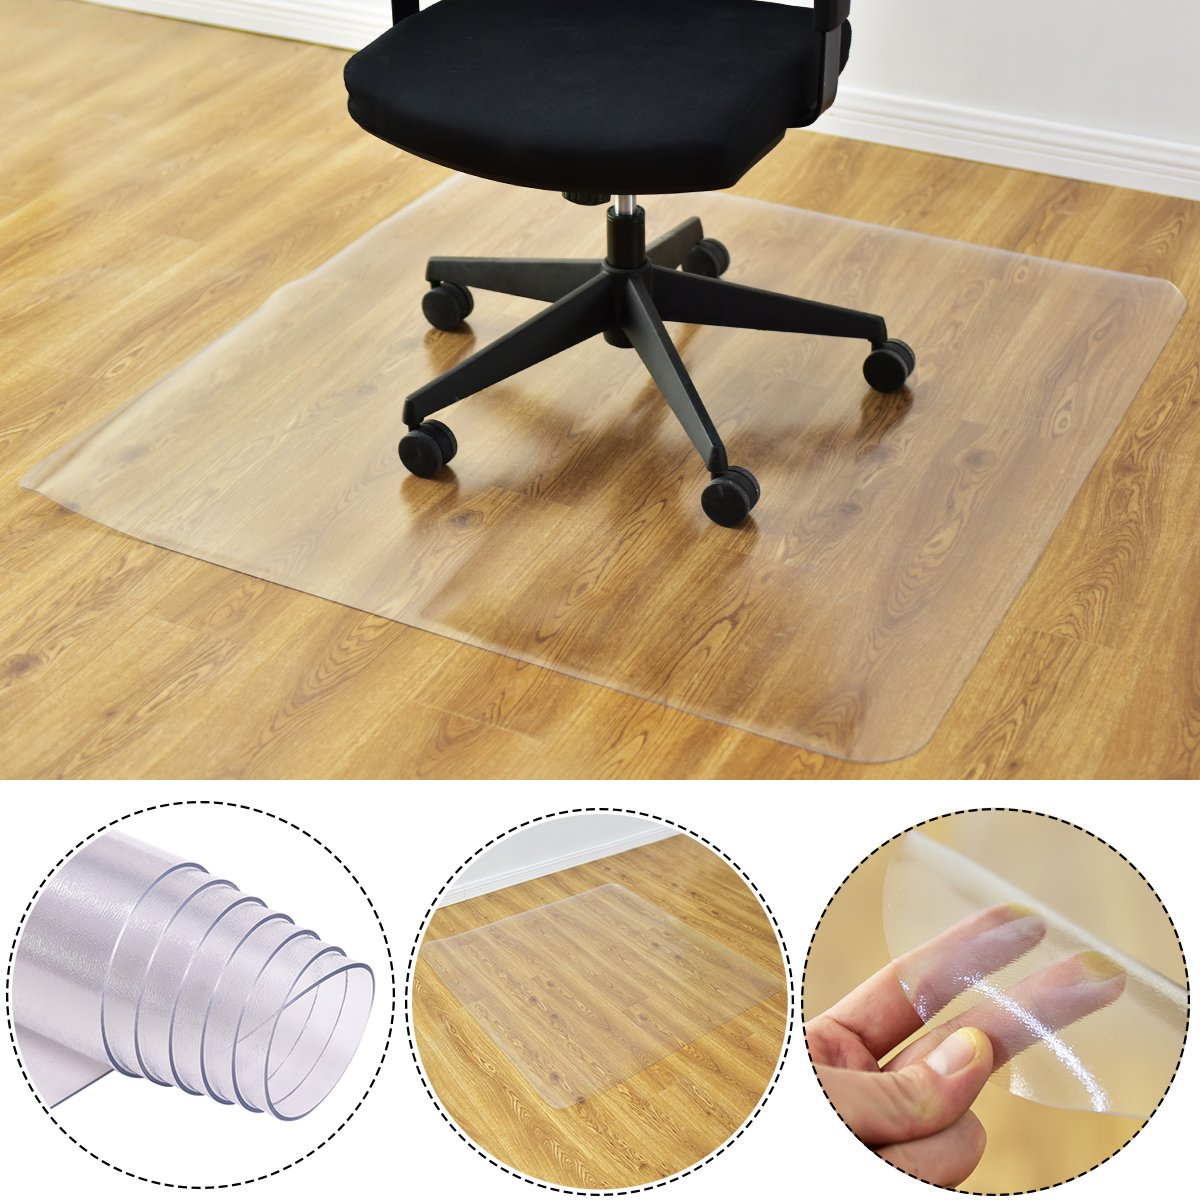 Costway 120x120cm Chair Floor Mat Protector Frosted Carpet Office PVC Plastic Non Slip